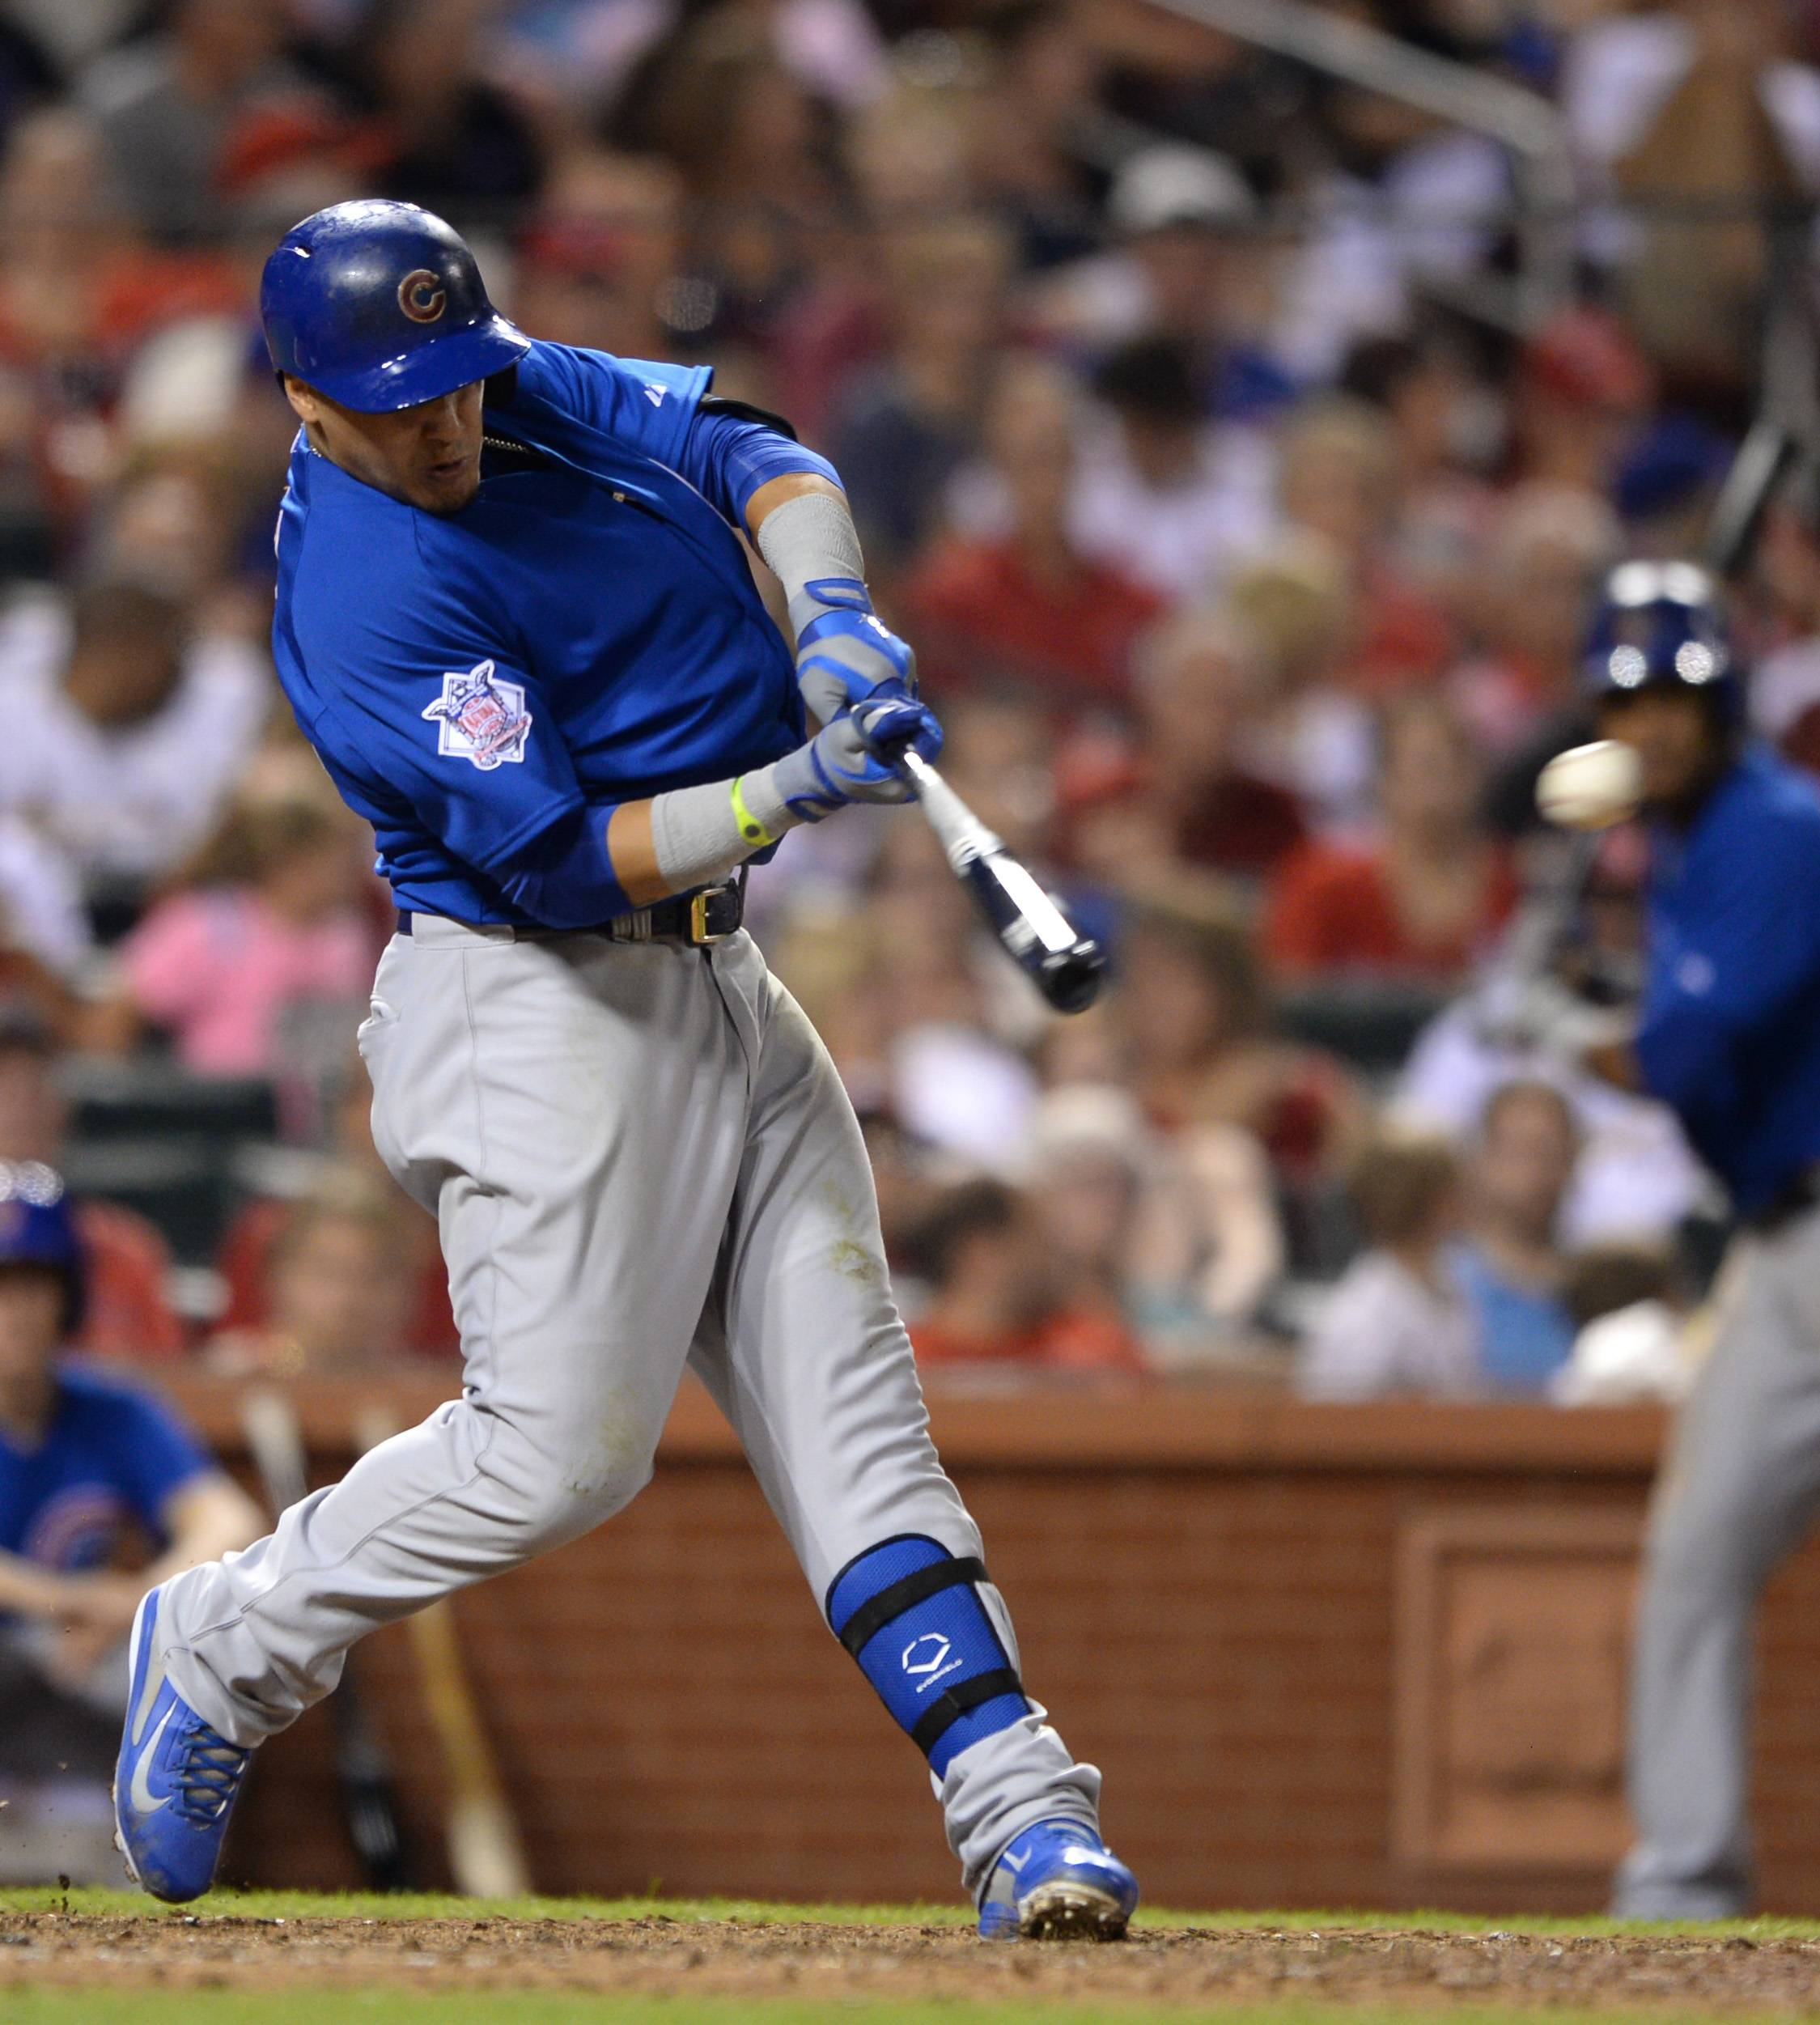 Javier Baez had a tiebreaking, two-run double in the eighth inning off All-Star reliever Pat Neshek as the Cubs beat the St. Louis Cardinals 7-2 on Friday night.